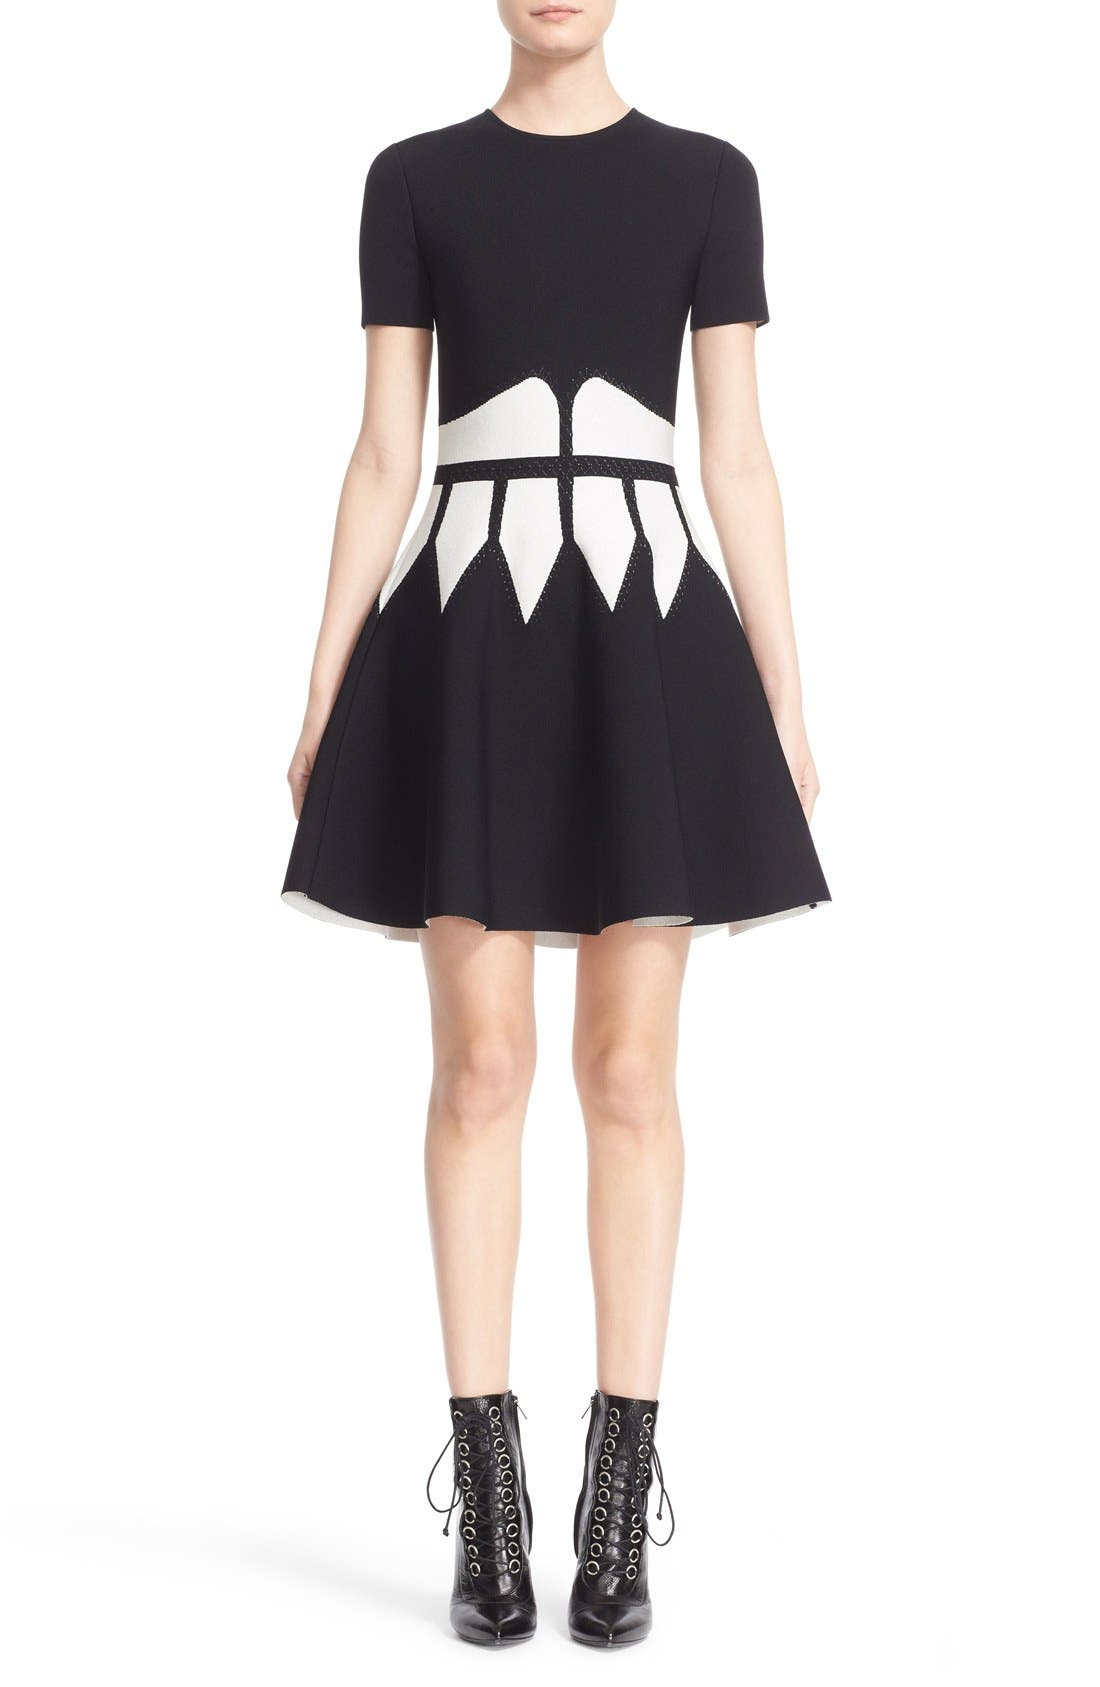 Intarsia Knit Fit & Flare Dress,                             Main thumbnail 1, color,                             BLACK/ WHITE